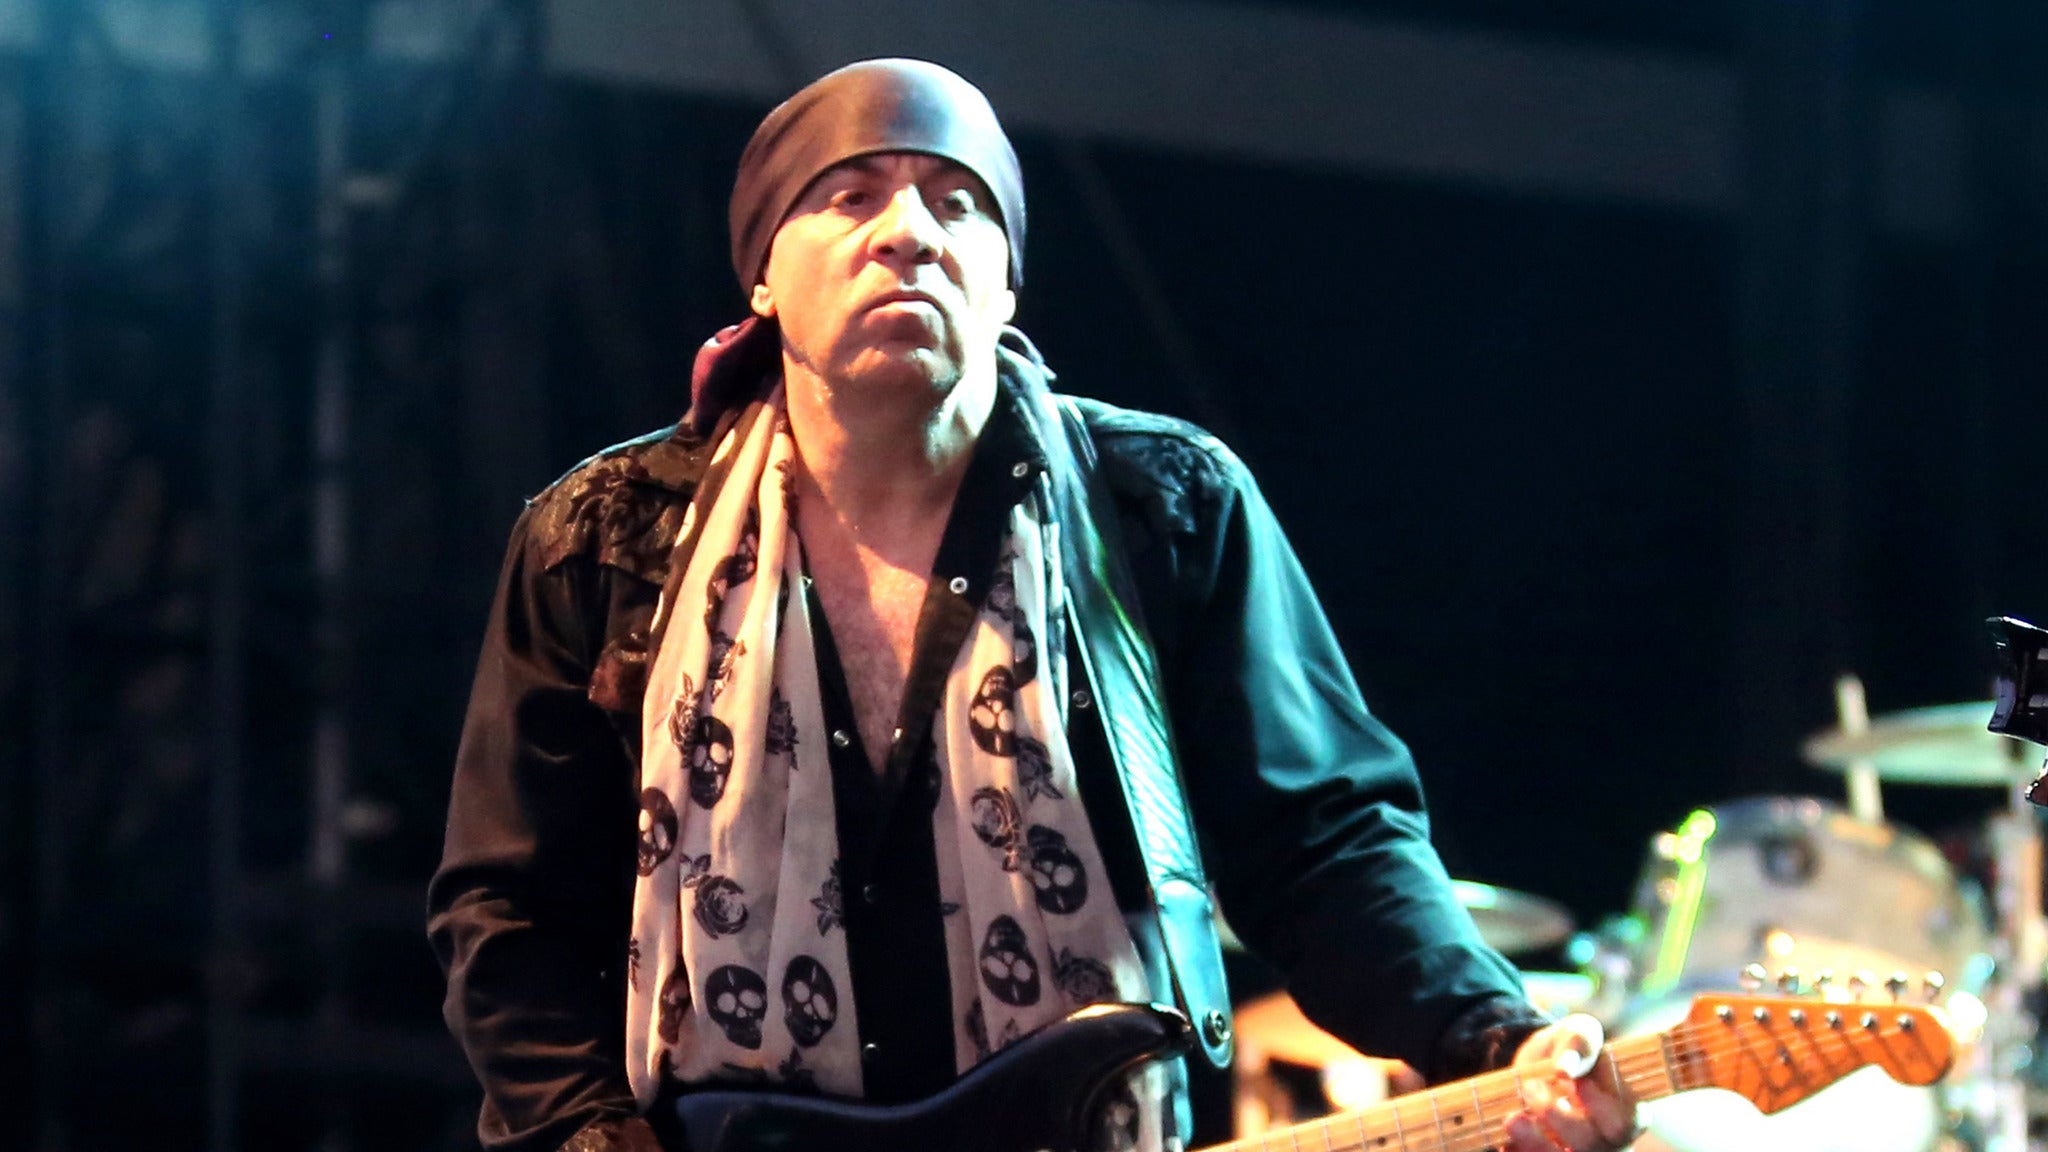 Little Steven and the Disciples of Soul - Summer of Sorcery Tour 2019